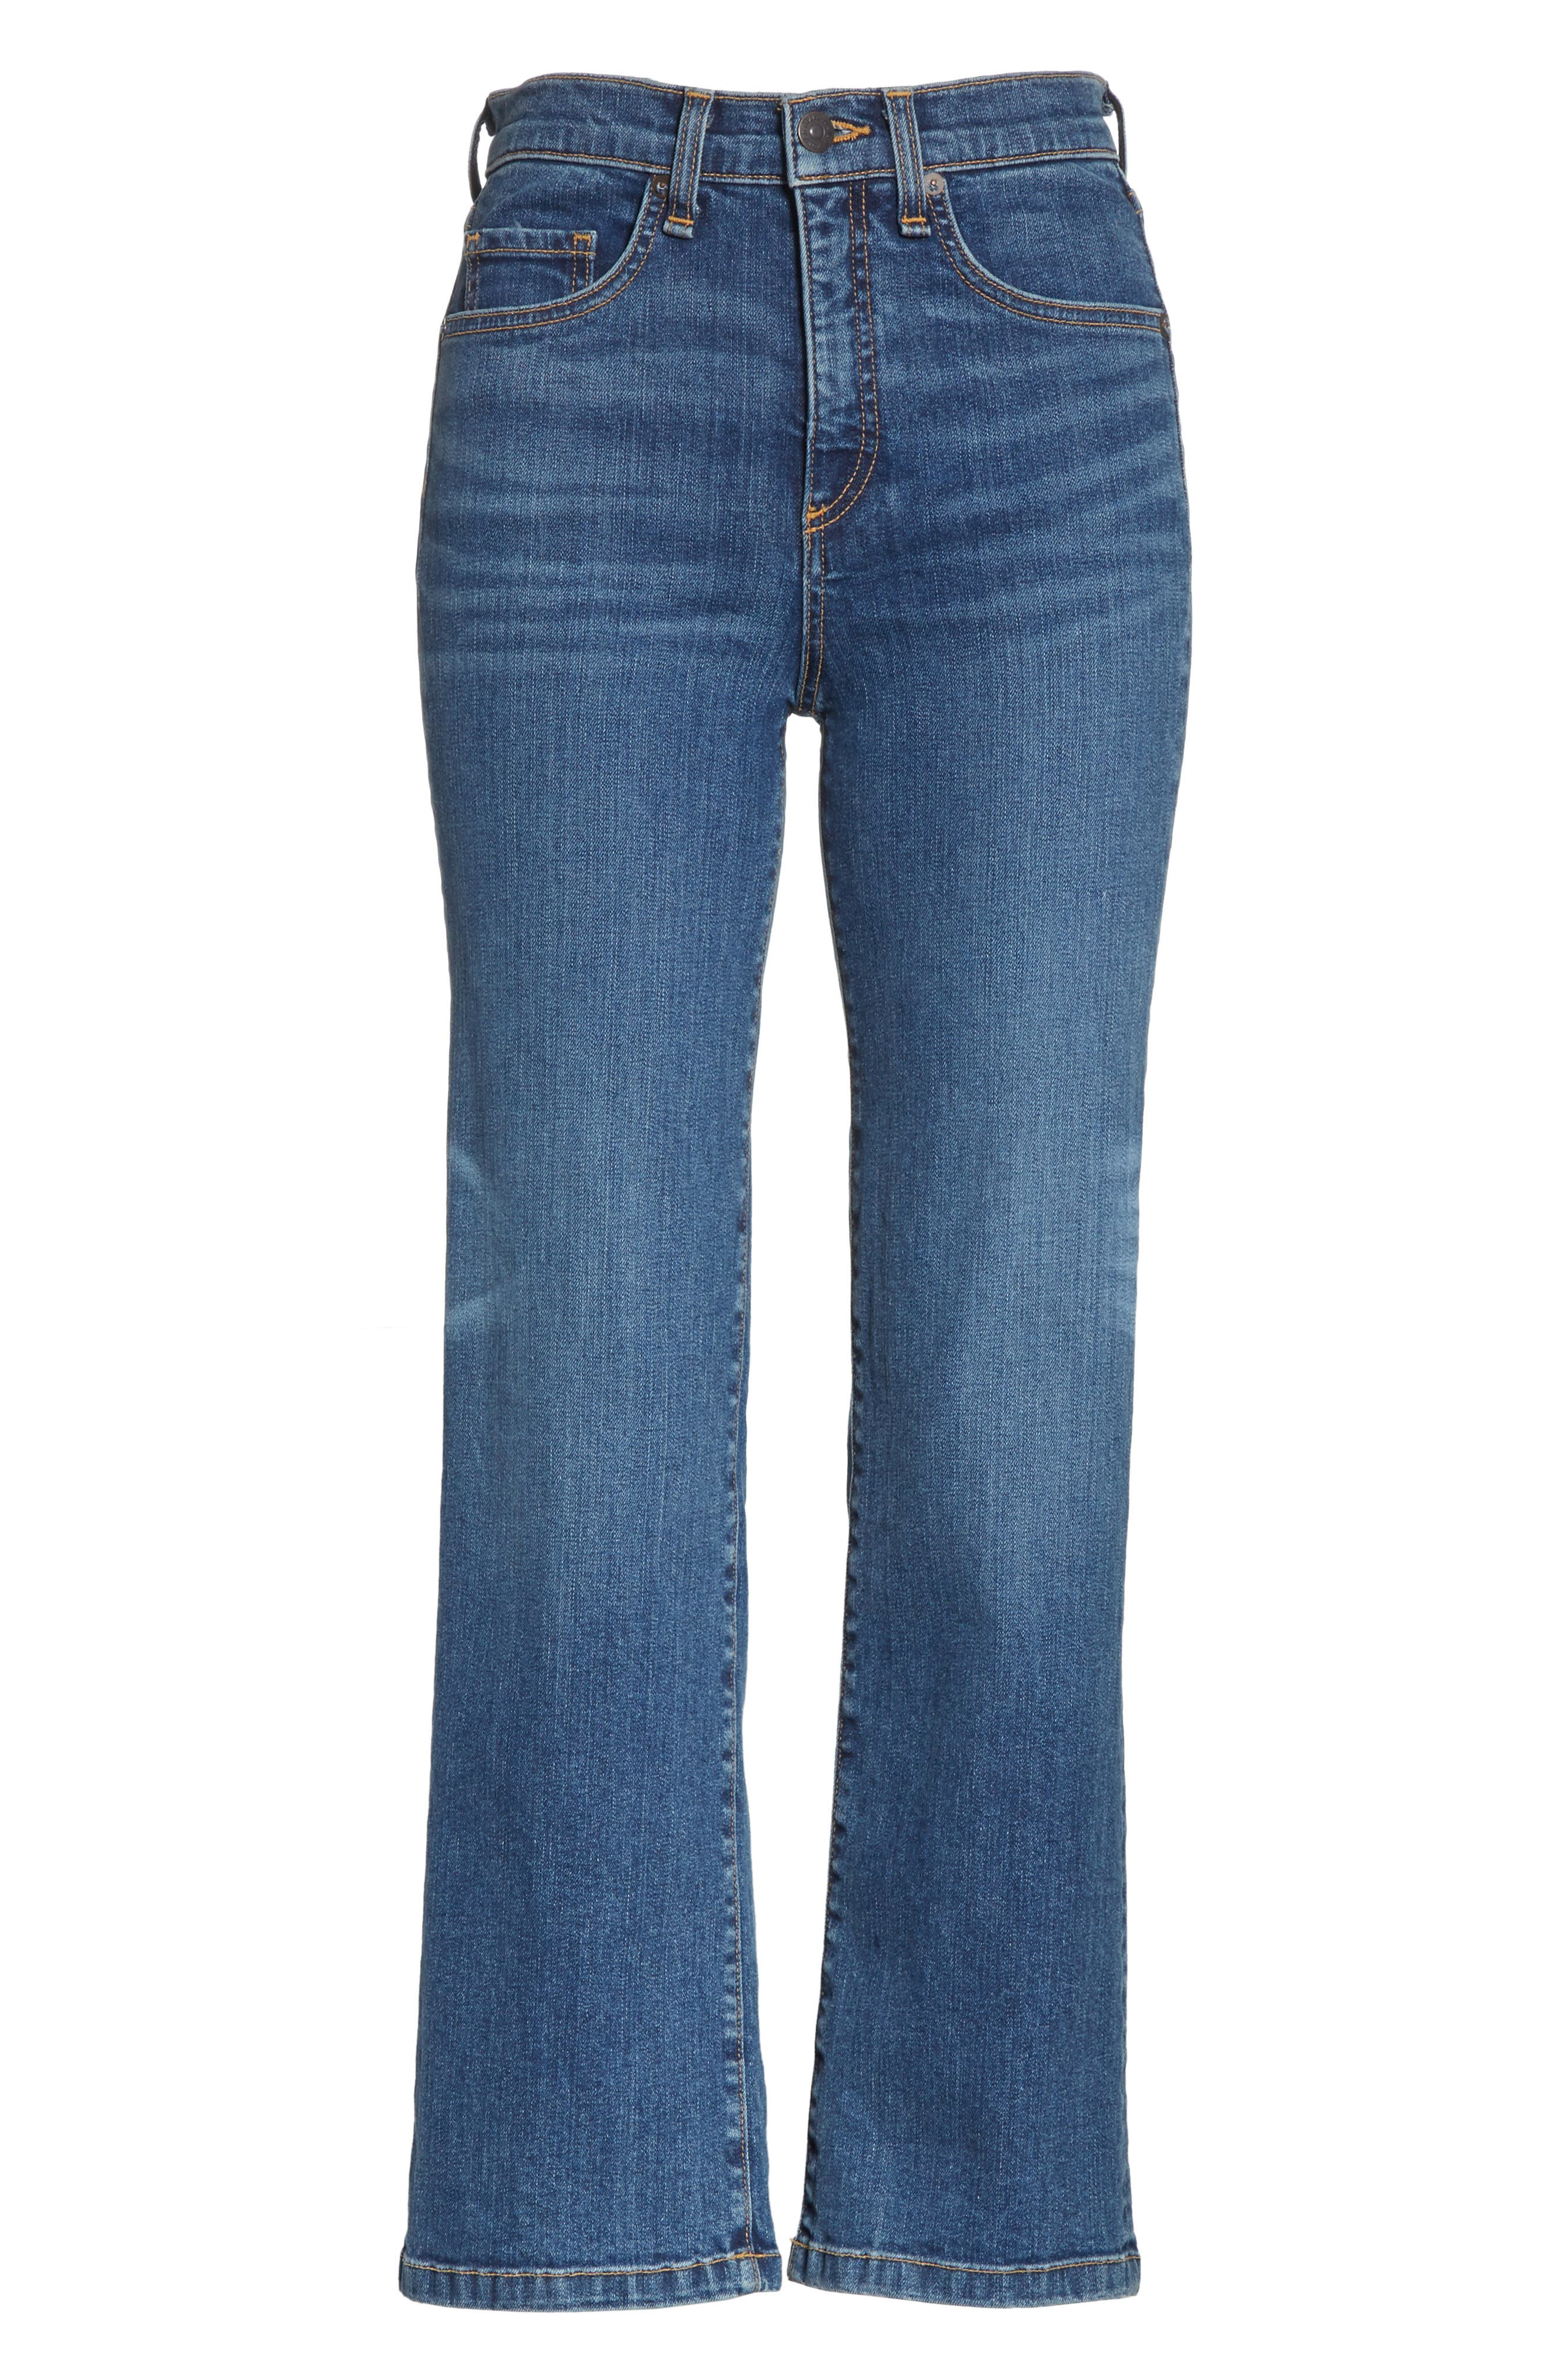 Jackie Crop Straight Leg Jeans,                             Alternate thumbnail 6, color,                             200